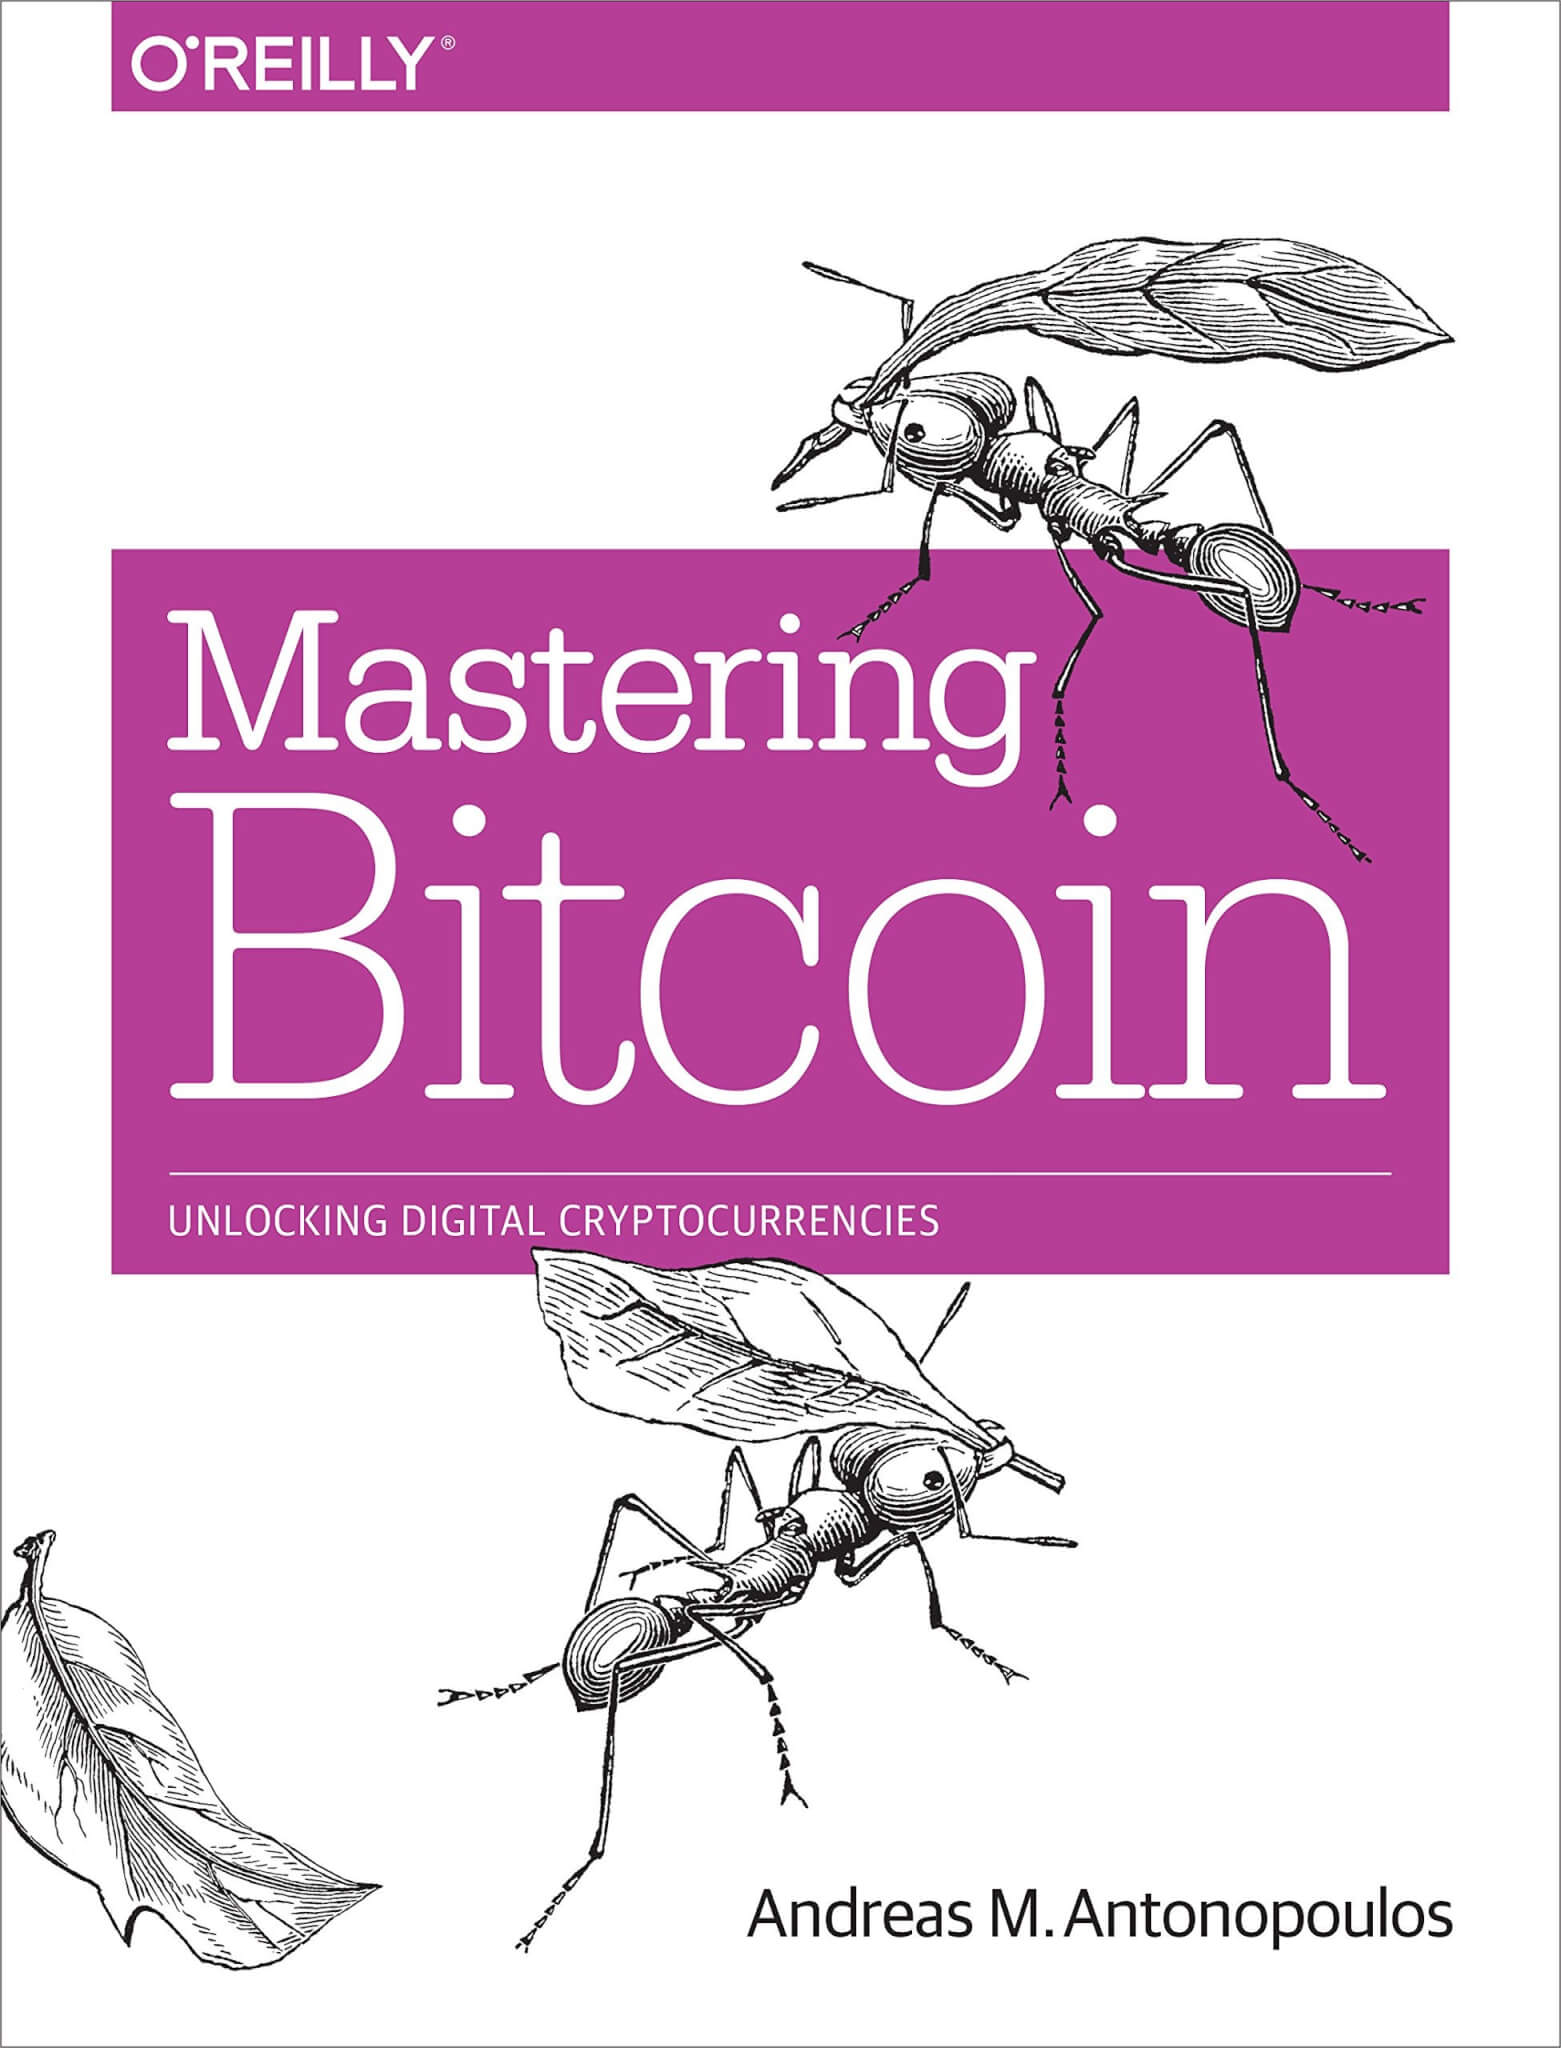 mastering bitcoin should be the first book a crypto newbie should read first.